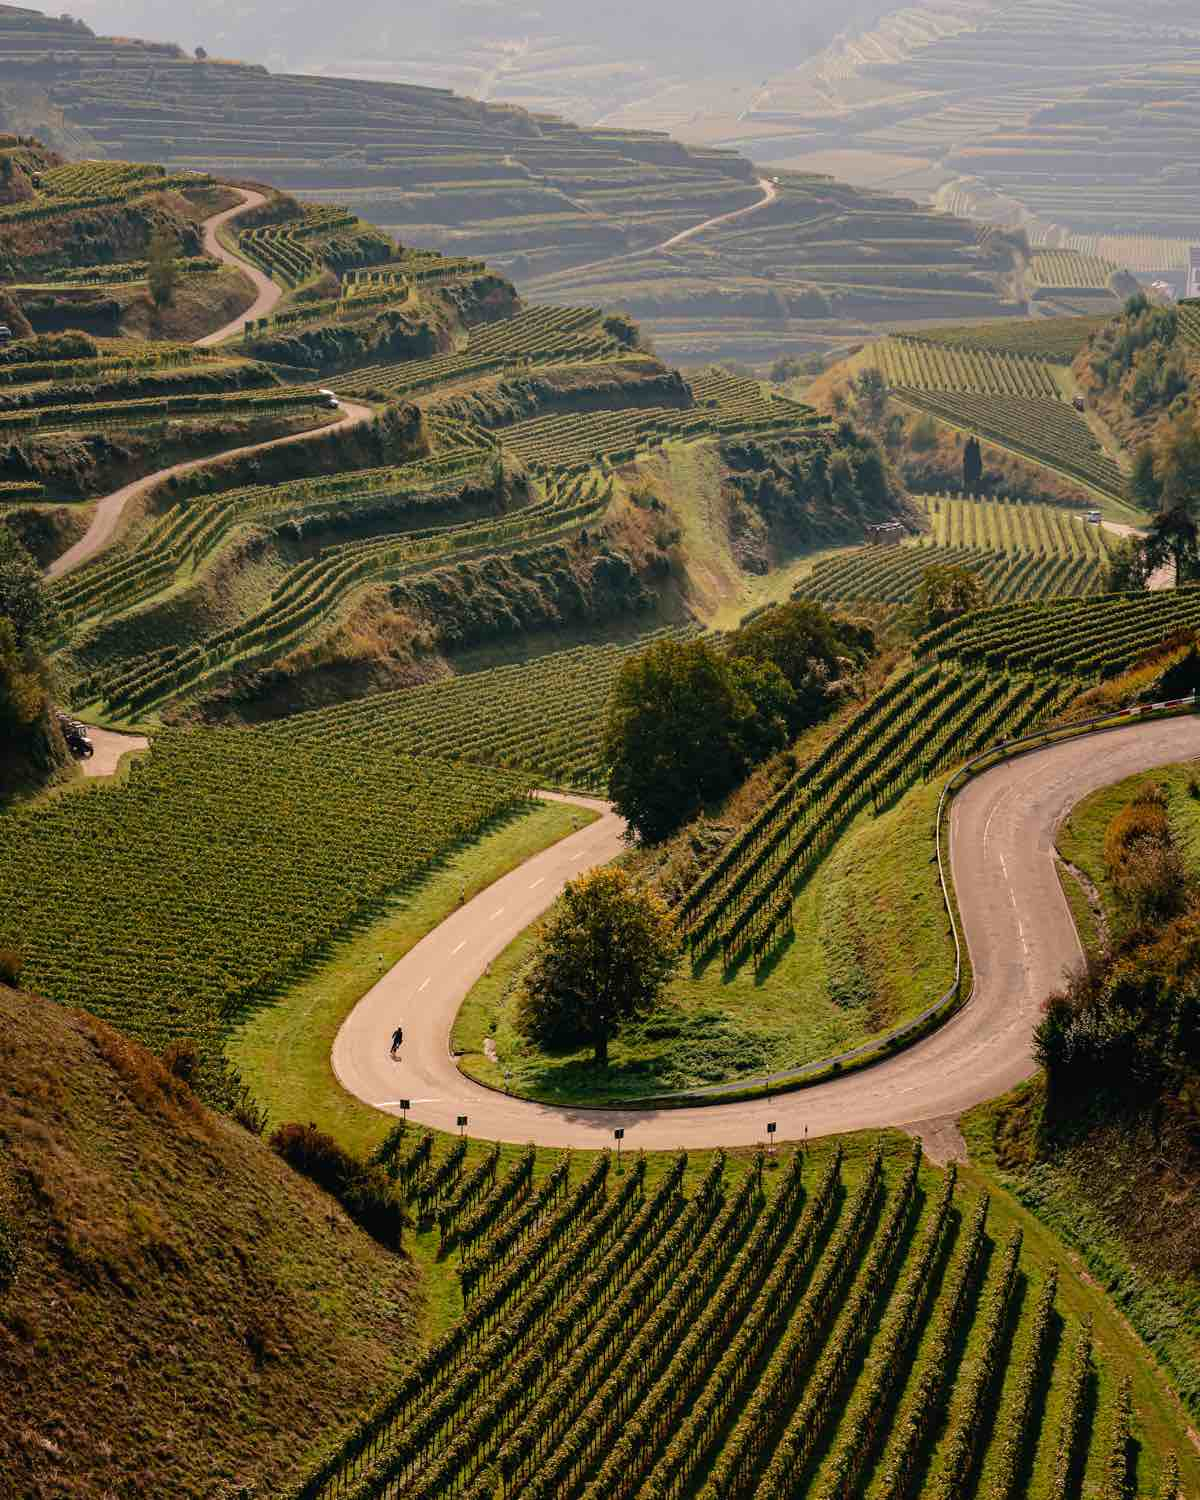 bikerumor pic of the day photo of a cyclist from far away in the middle of a curvy road surrounded by vineyards that grow up the sides of the mountain. The sky is hazy and the sun is bright.